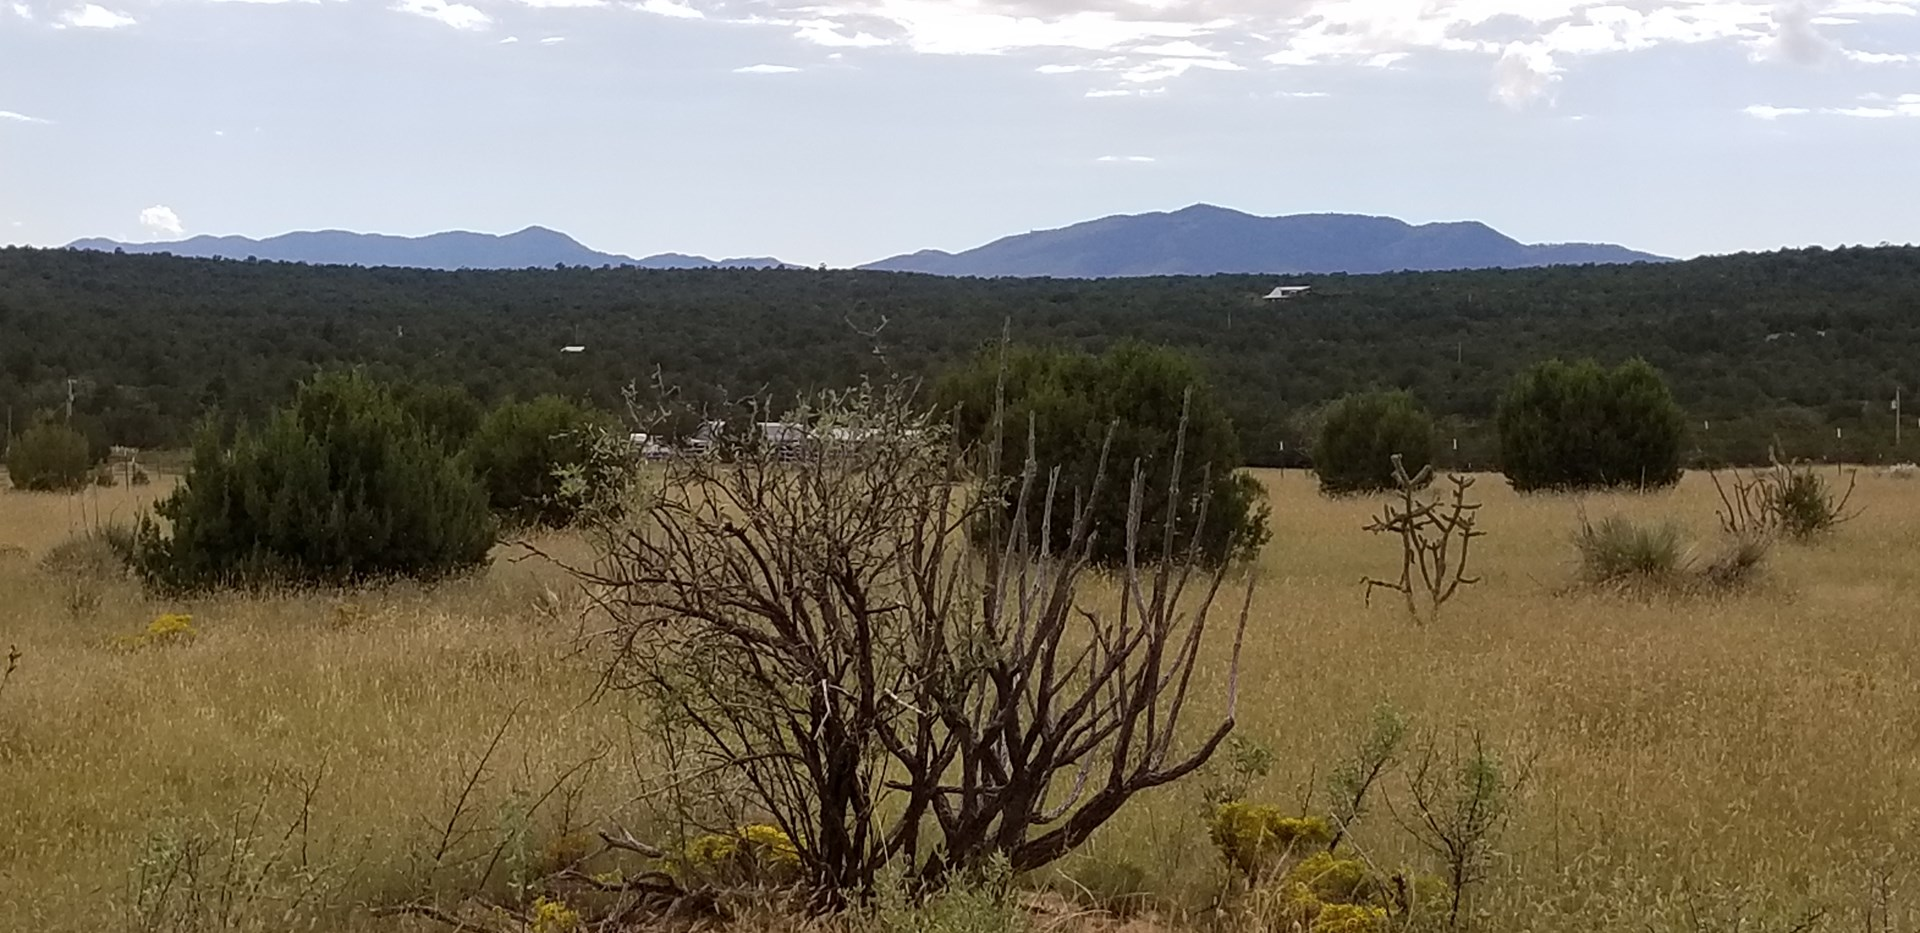 For Sale 36 Acre Home Site in Manzano Foothills Tajique NM